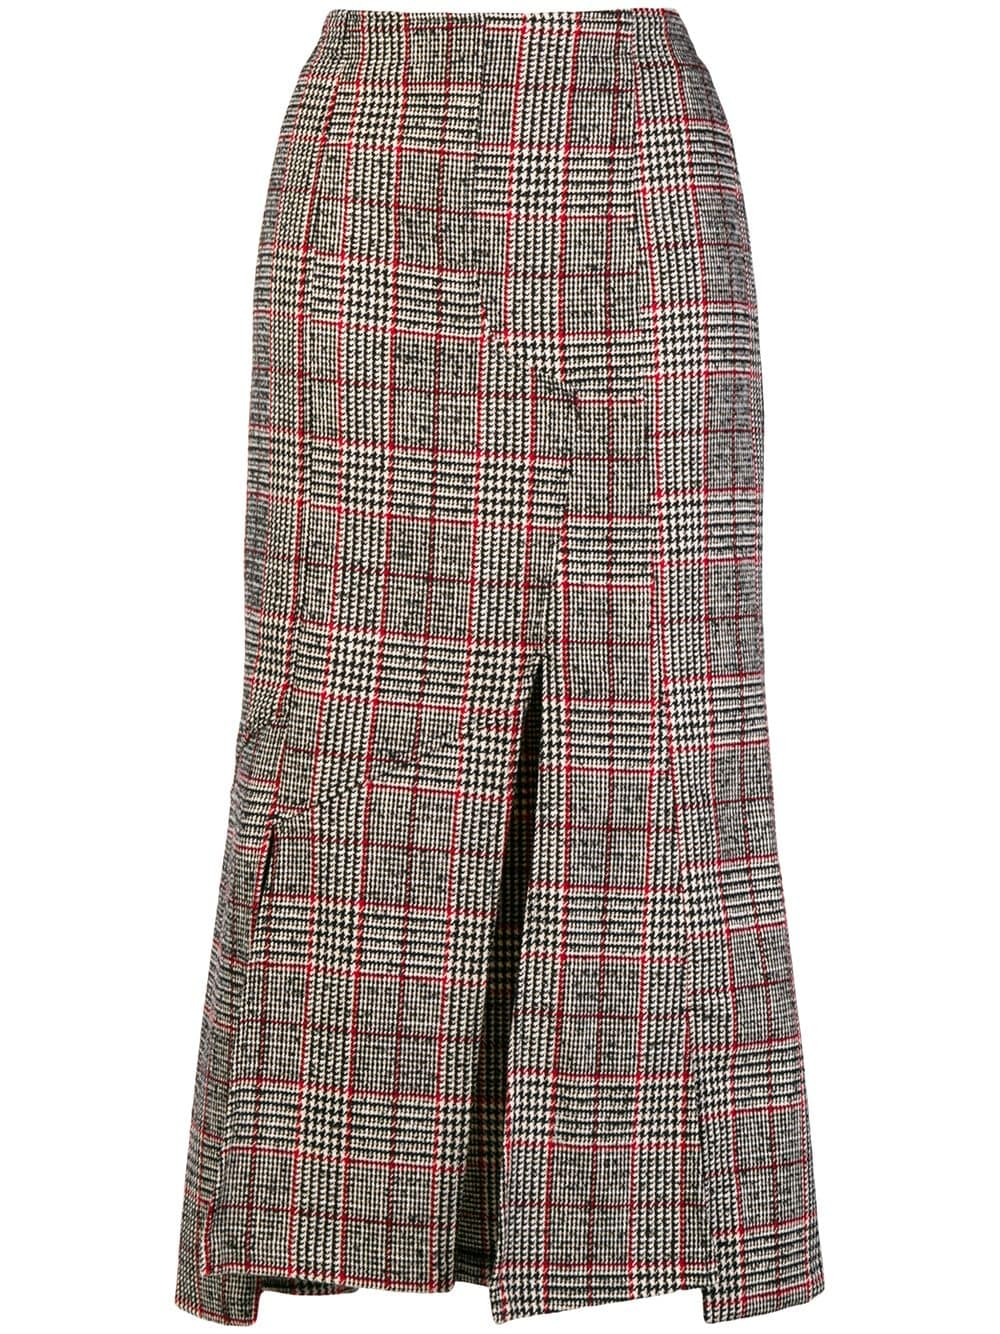 e4a16b367 McQ Alexander McQueen checked print fitted skirt - Black in 2019 ...